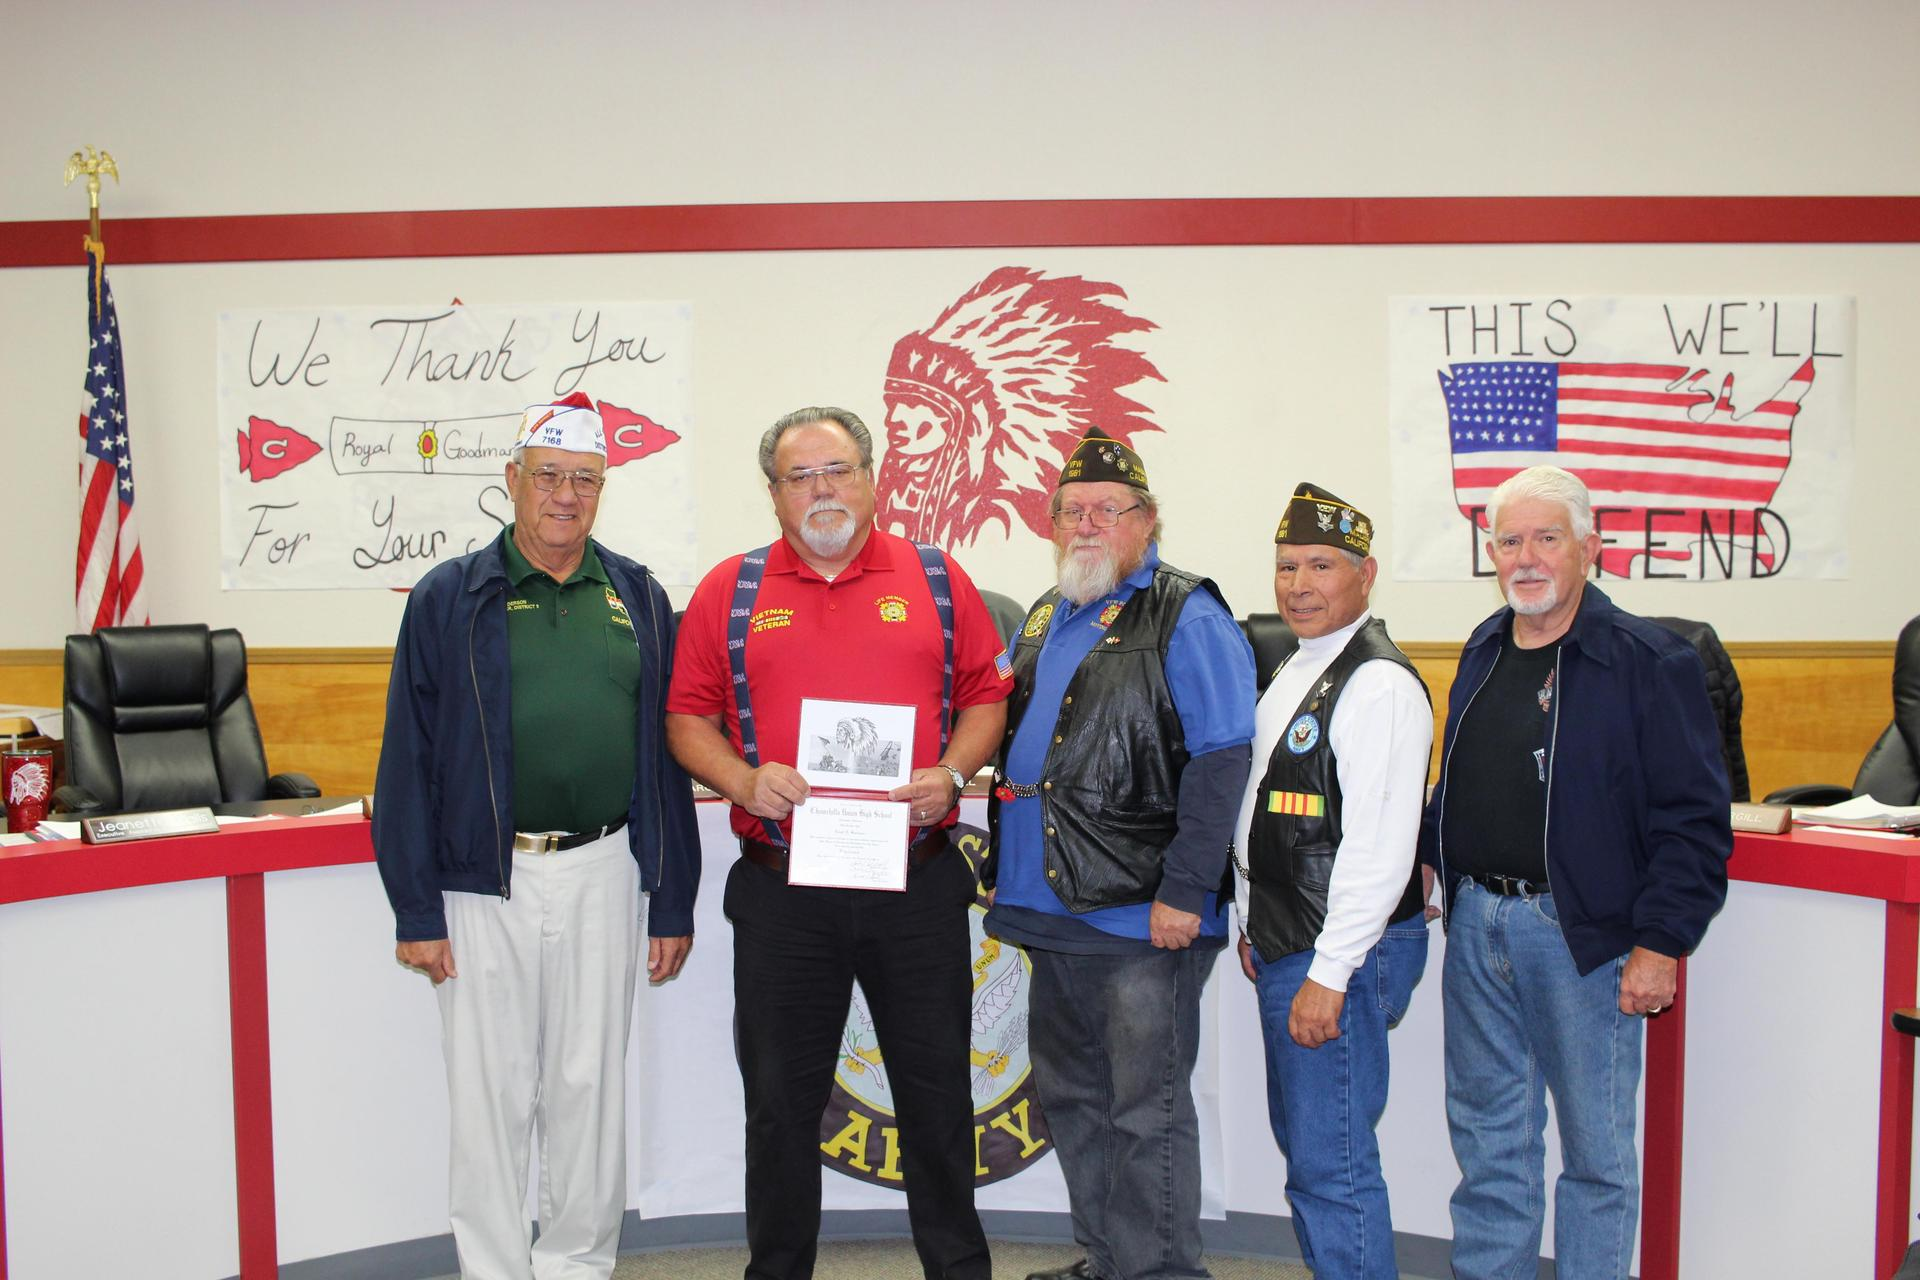 Royal Goodman poses with members of his VFW Post.